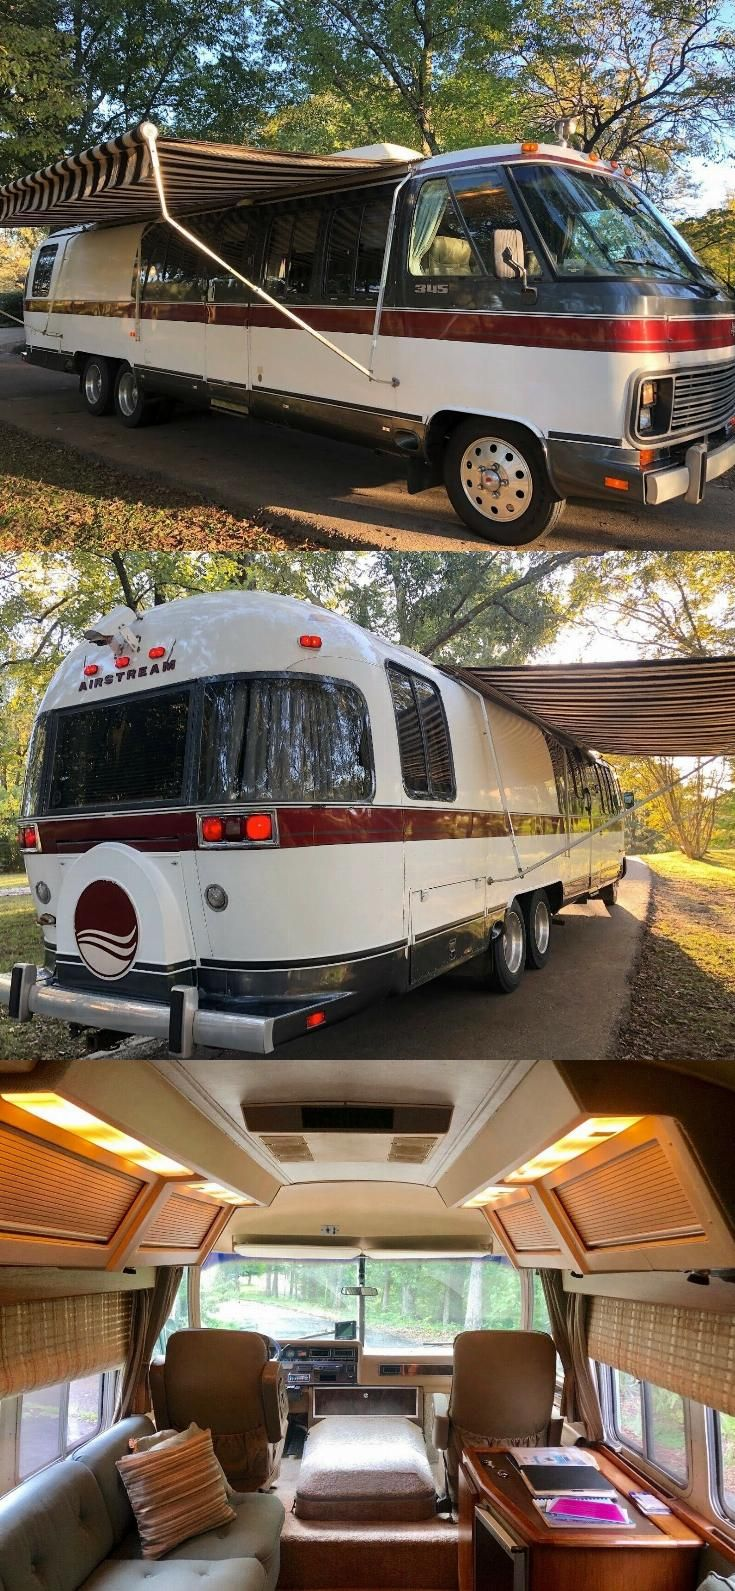 Pin on Campers for sale